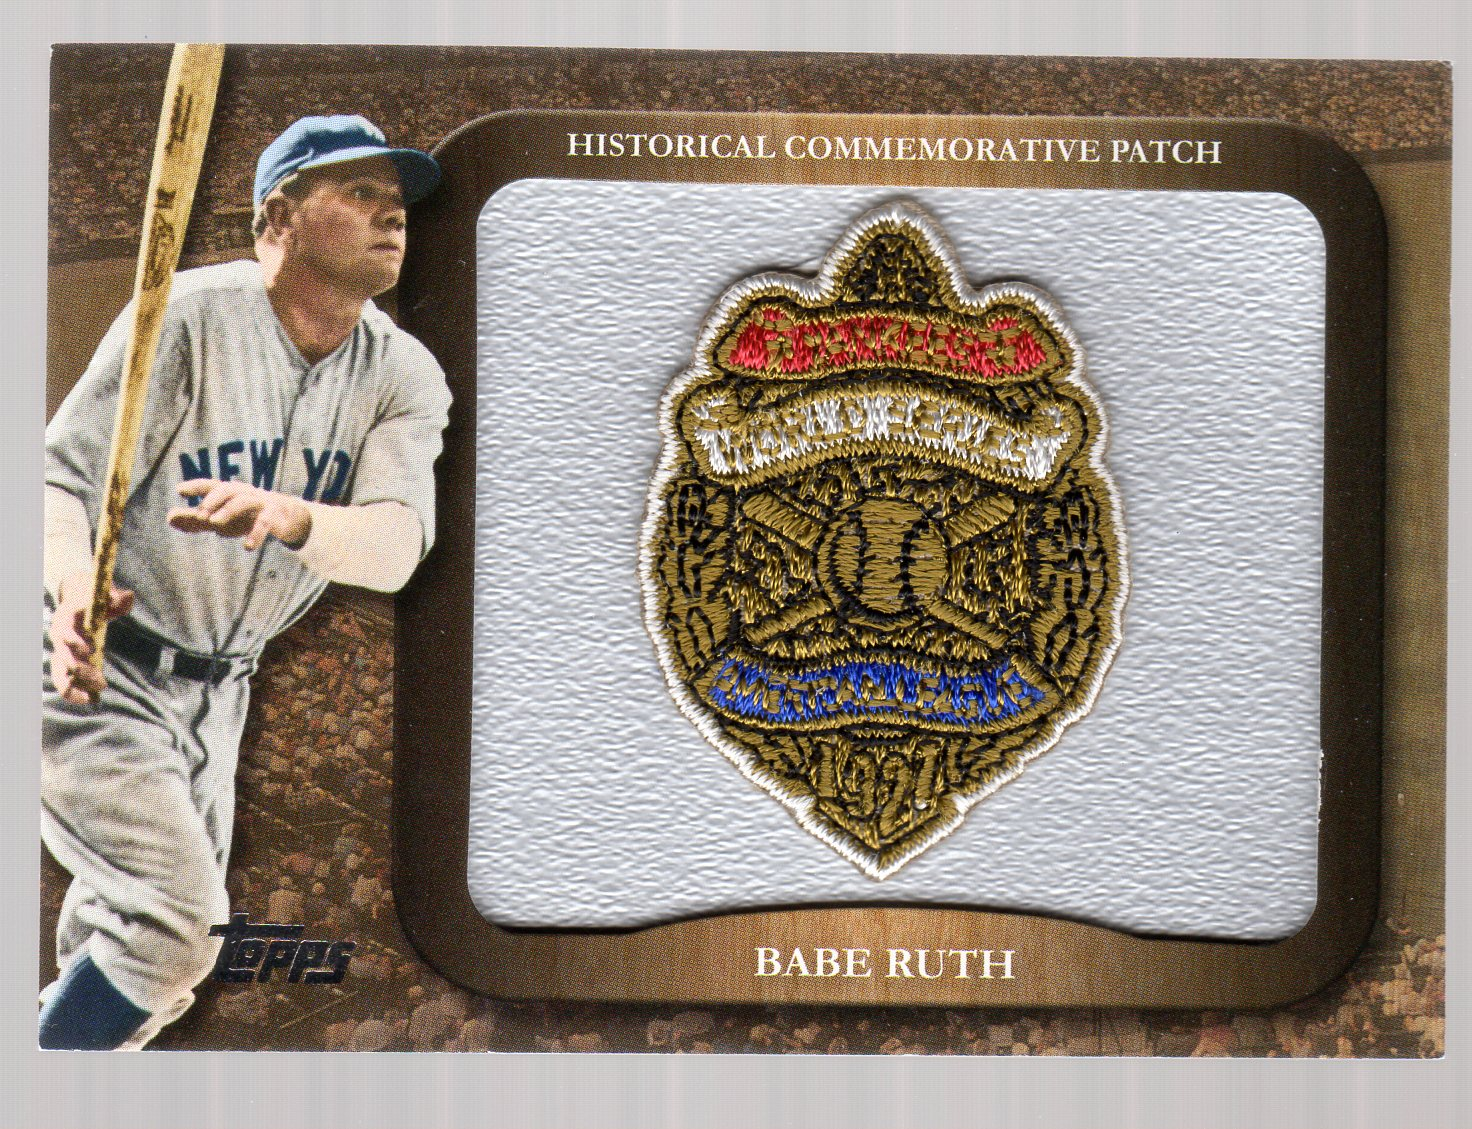 2009 Topps Legends Commemorative Patch #LPR2 Babe Ruth/1927 World Series